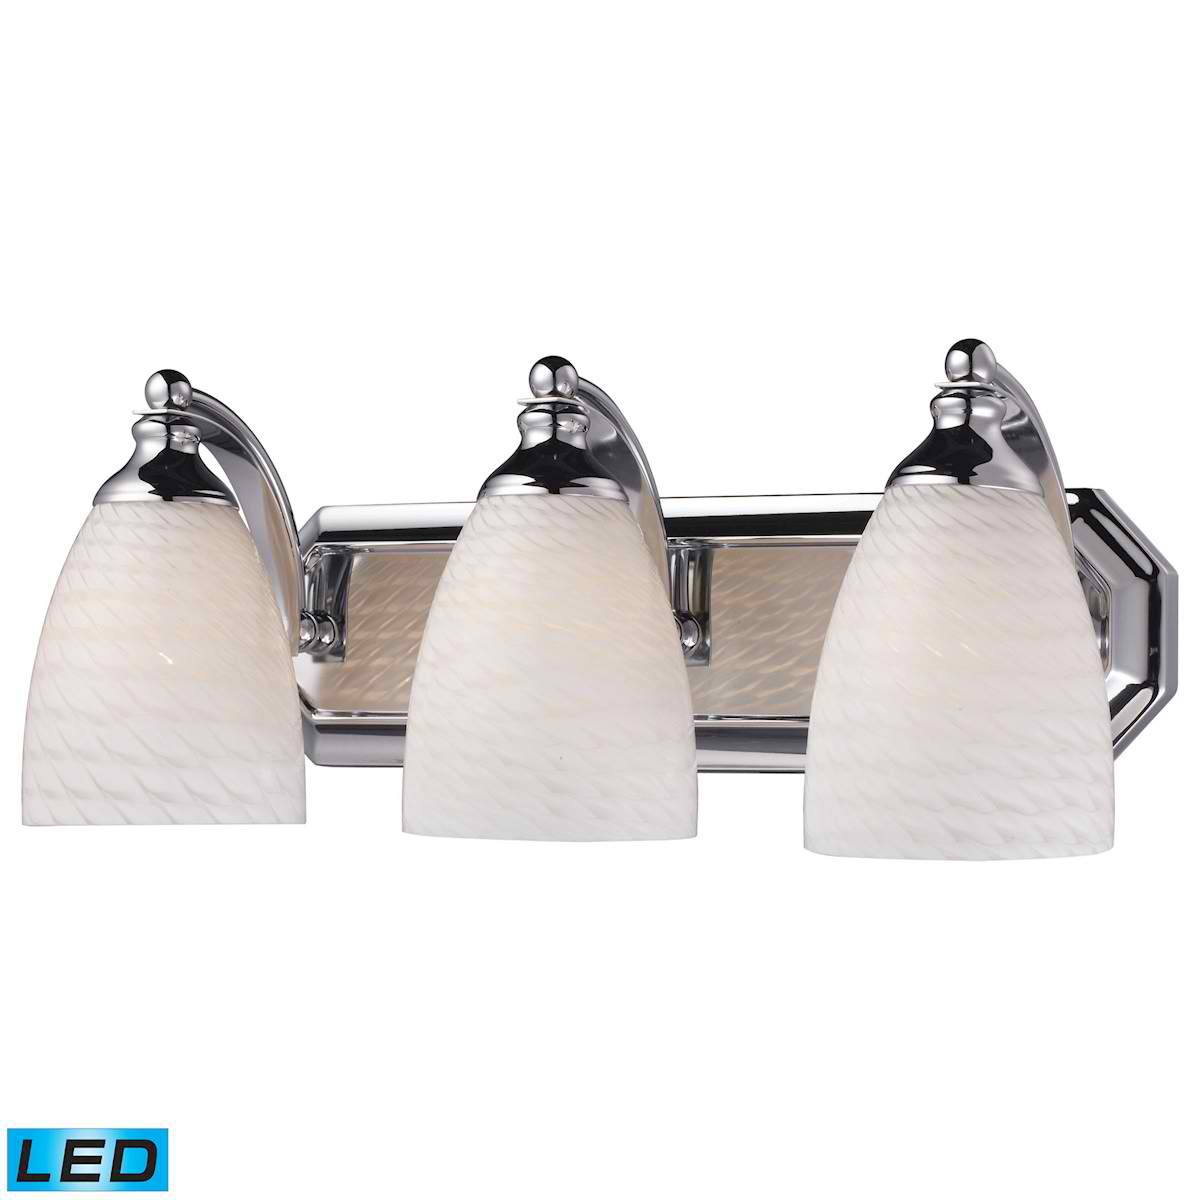 3 Light Vanity in Polished Chrome and White Swirl Glass - LED, 800 Lumens (2400 Lumens Total) with Full Scale